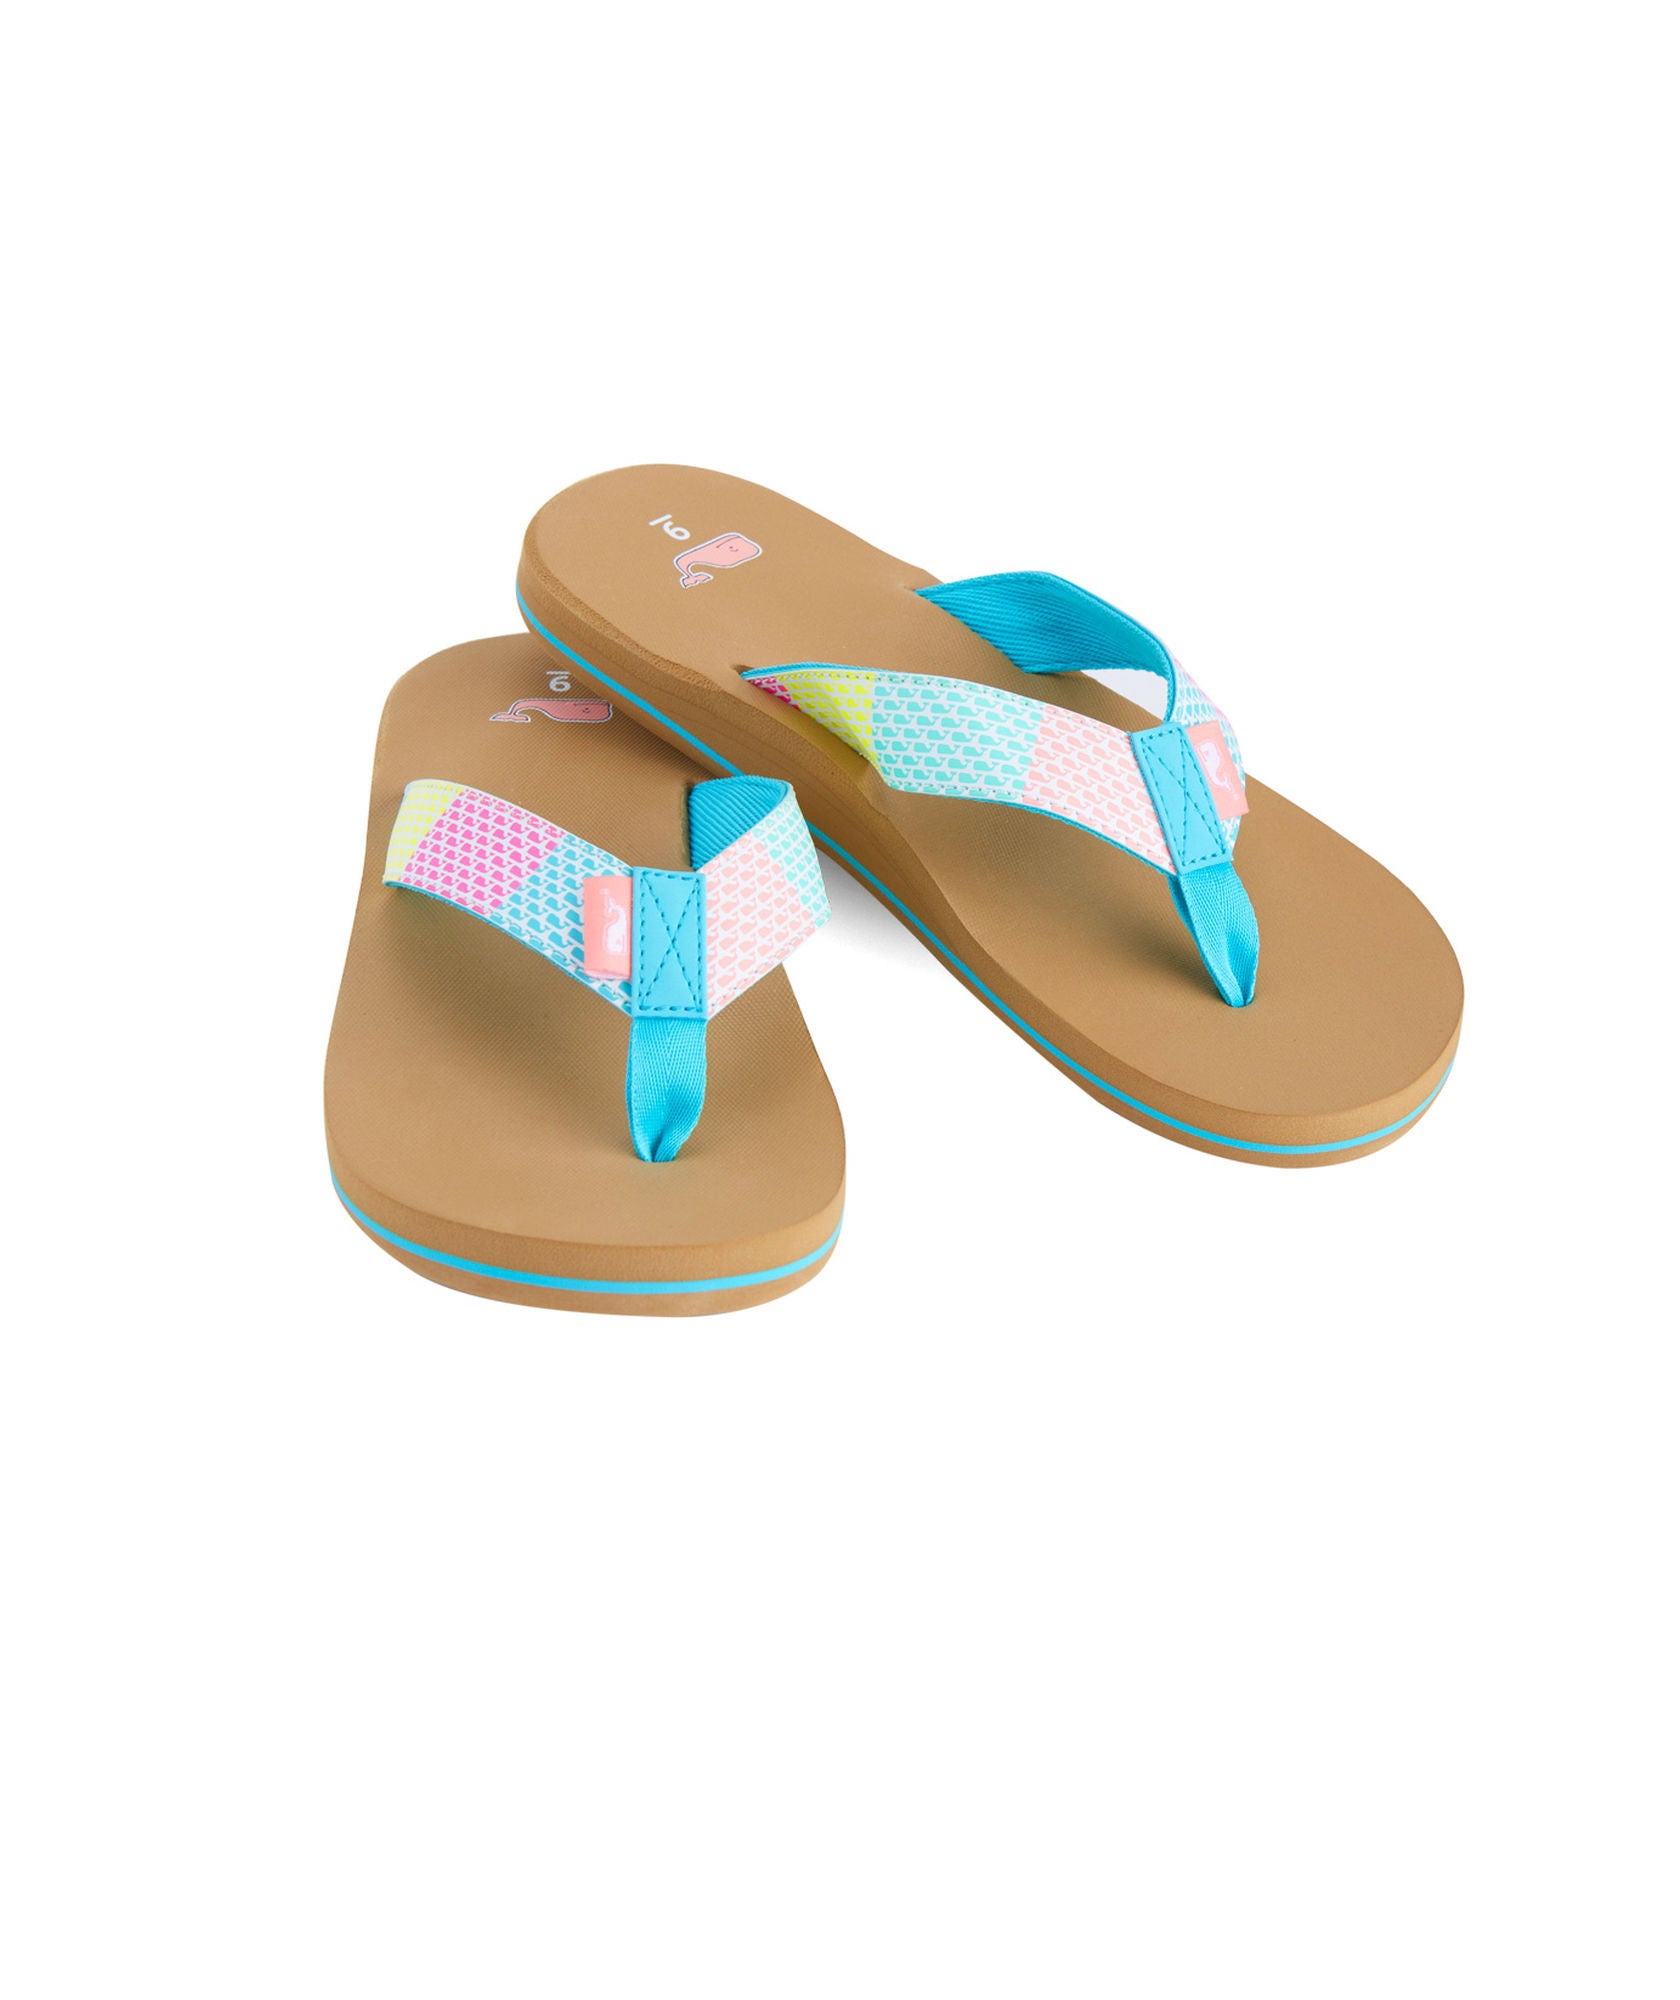 Vineyard Vines Neon Whales Flip Flop - Turqs Front View